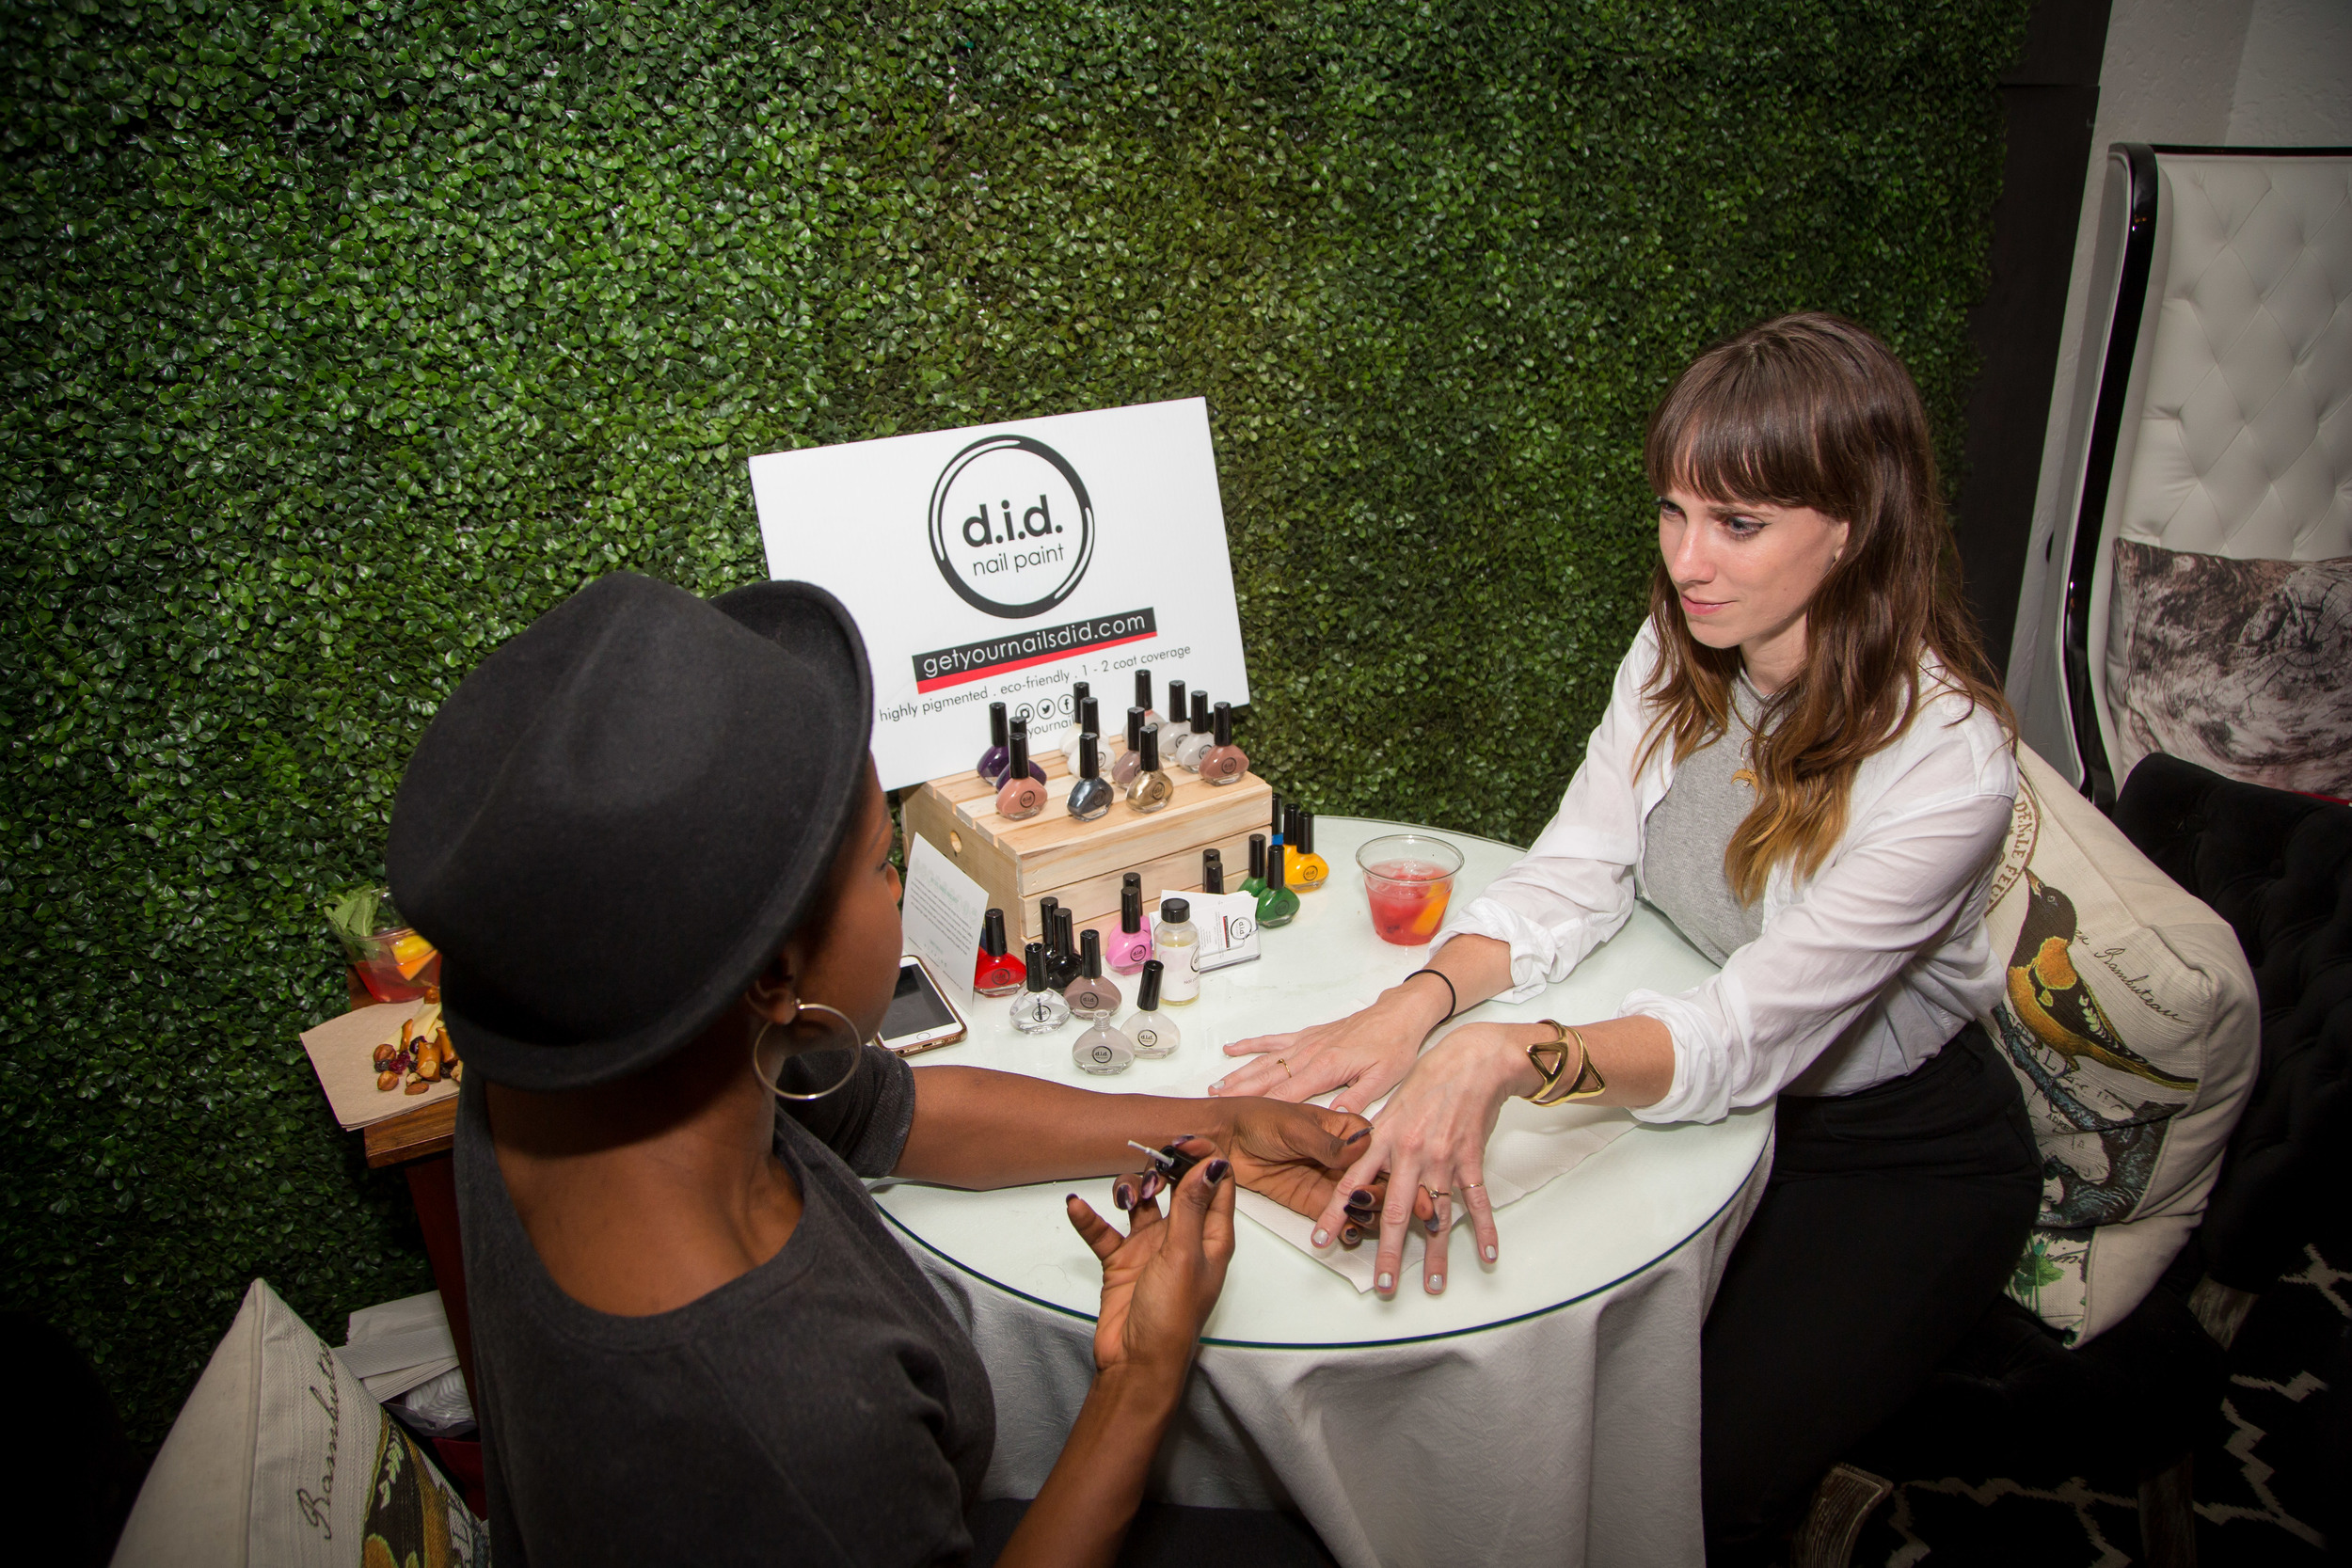 Alden Wicker of EcoCult getting her nails done at the D.I.D. manicure station.